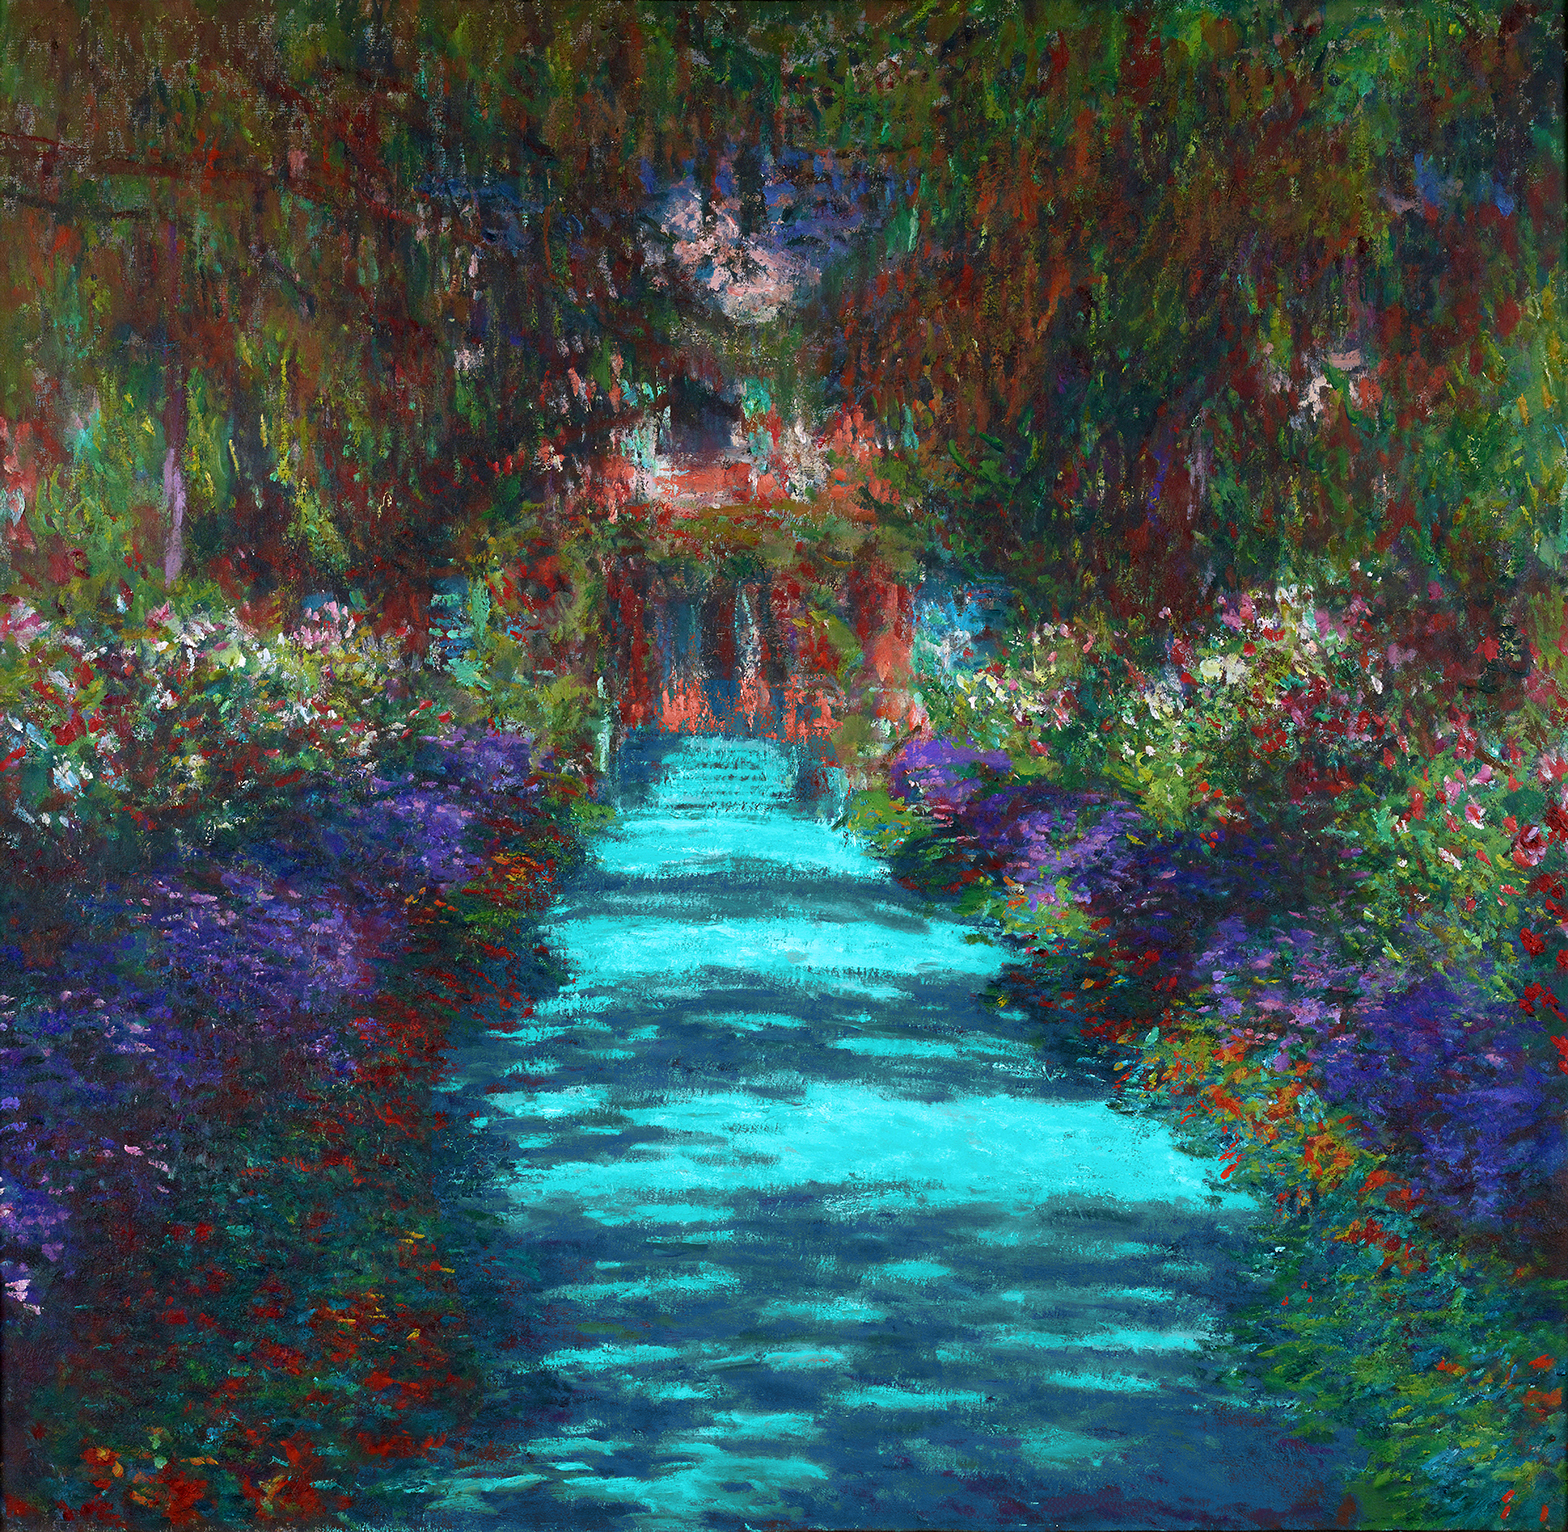 a play and after of monet's garden in the artist's paradise series of colorful garden with a river flowing through